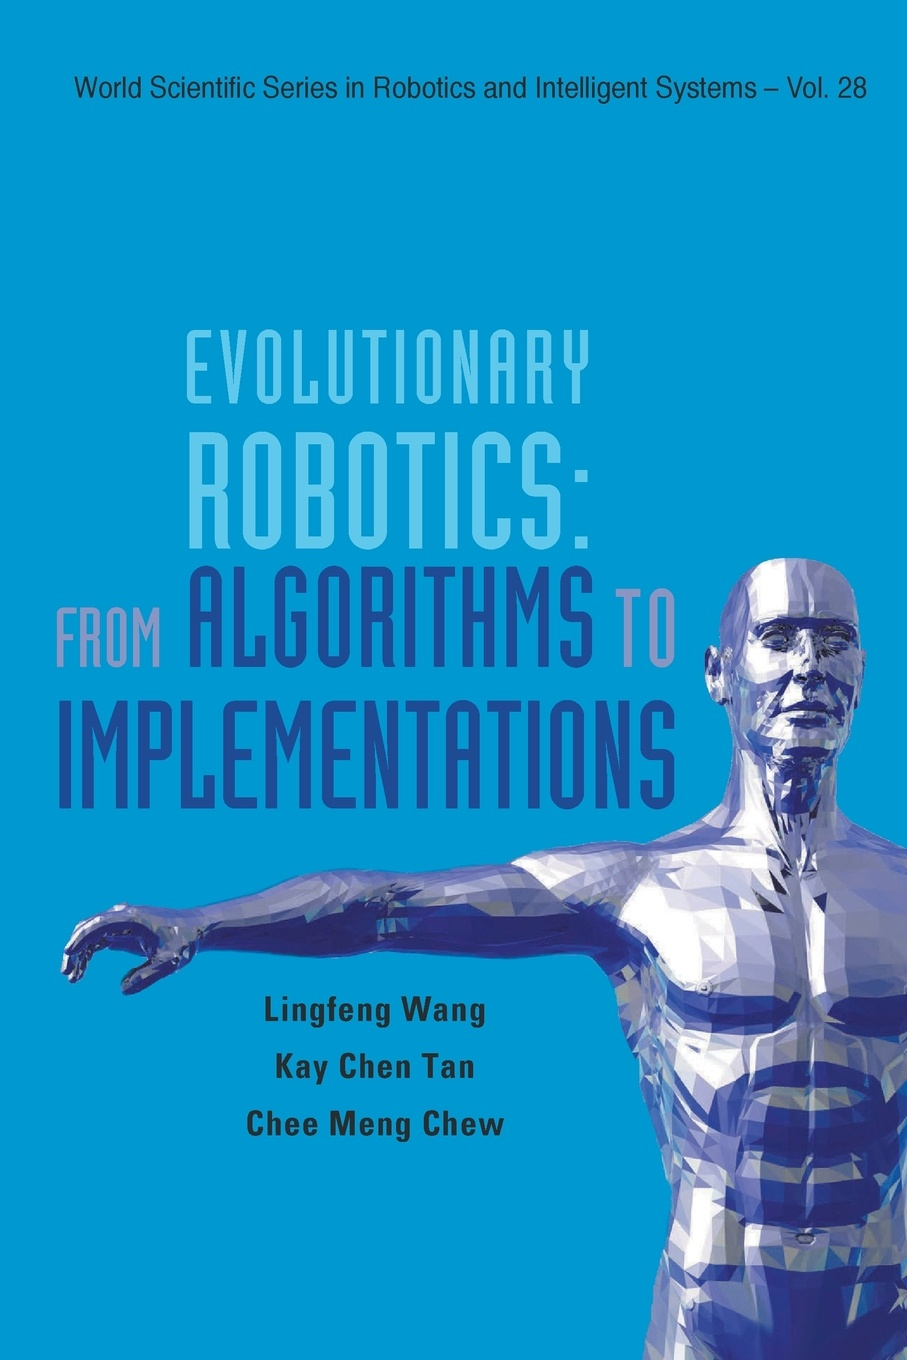 Ling-Feng Wang, Kay Chen Tan, Chee-Meng Chew EVOLUTIONARY ROBOTICS. FROM ALGORITHMS TO IMPLEMENTATIONS derong liu fundamentals of computational intelligence neural networks fuzzy systems and evolutionary computation